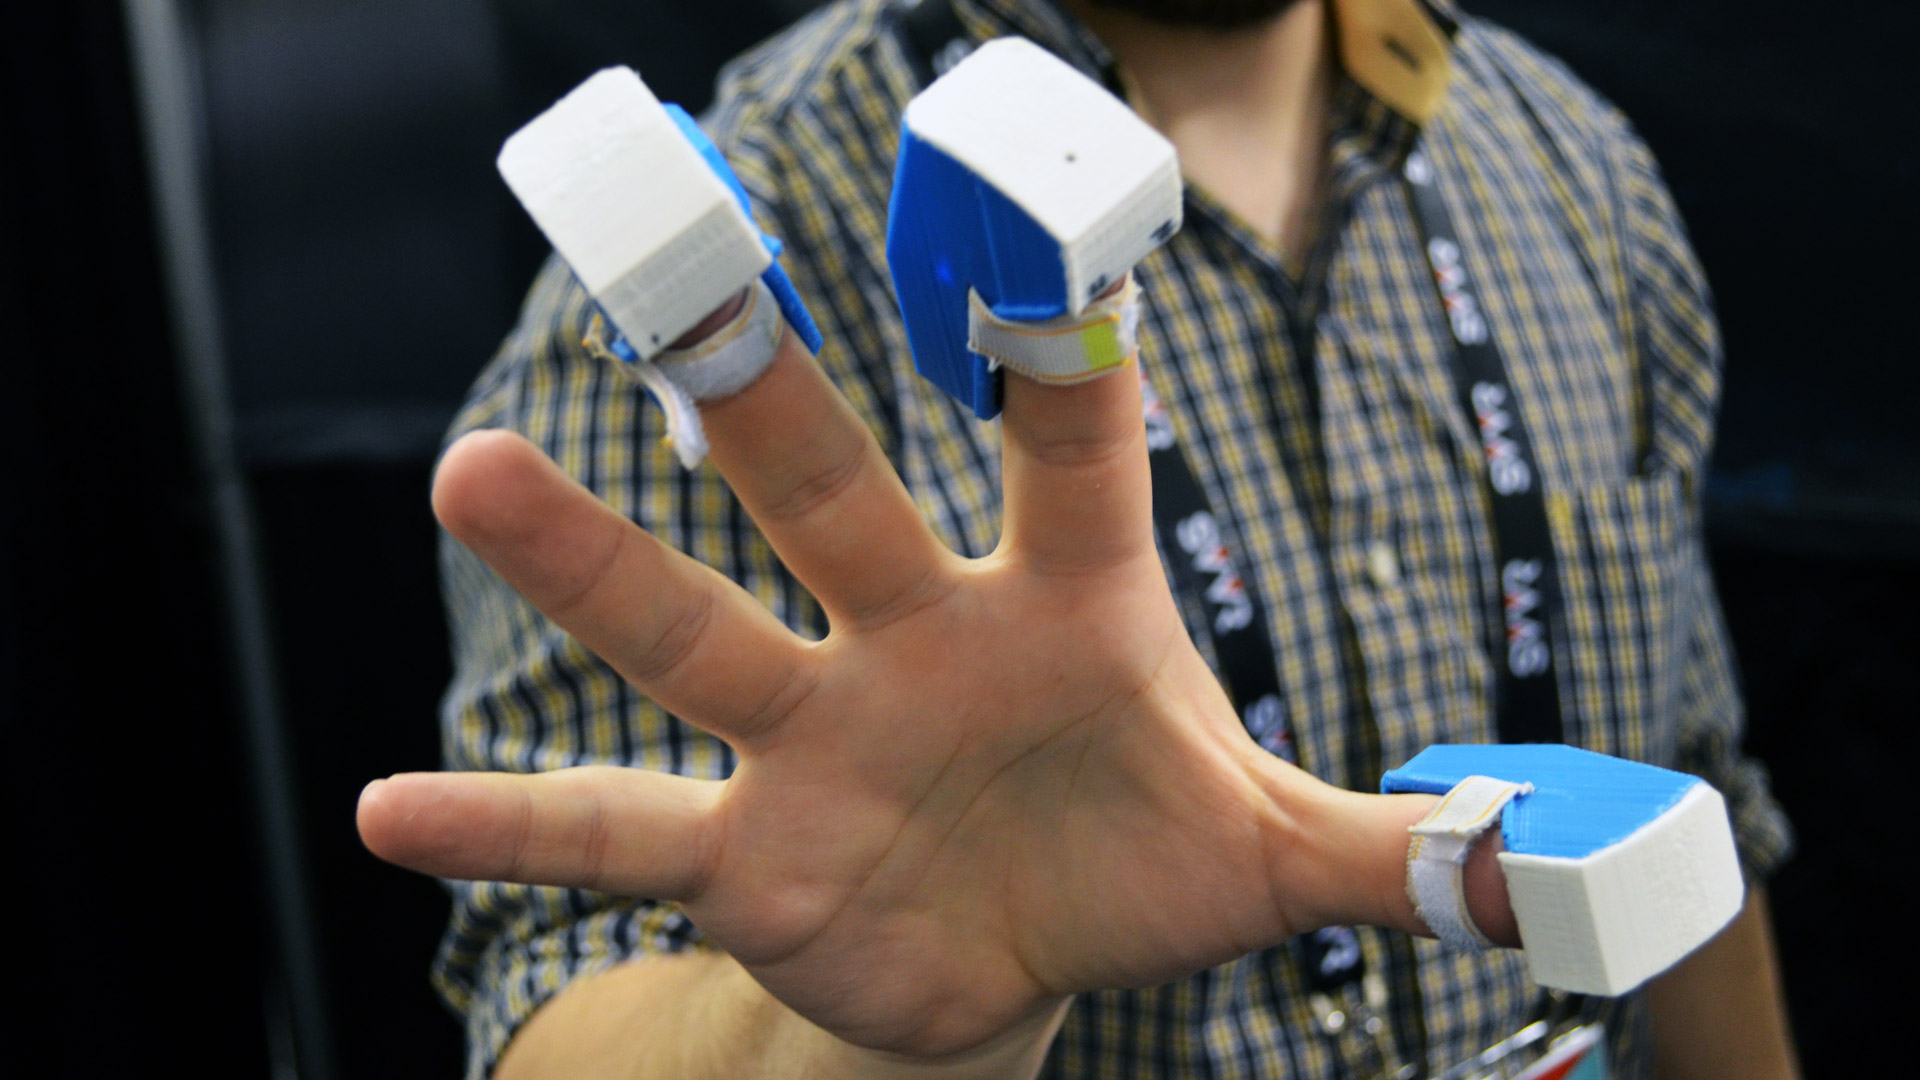 Go Touch VR's Haptic Feedback is So Simple You'll Wonder Why You